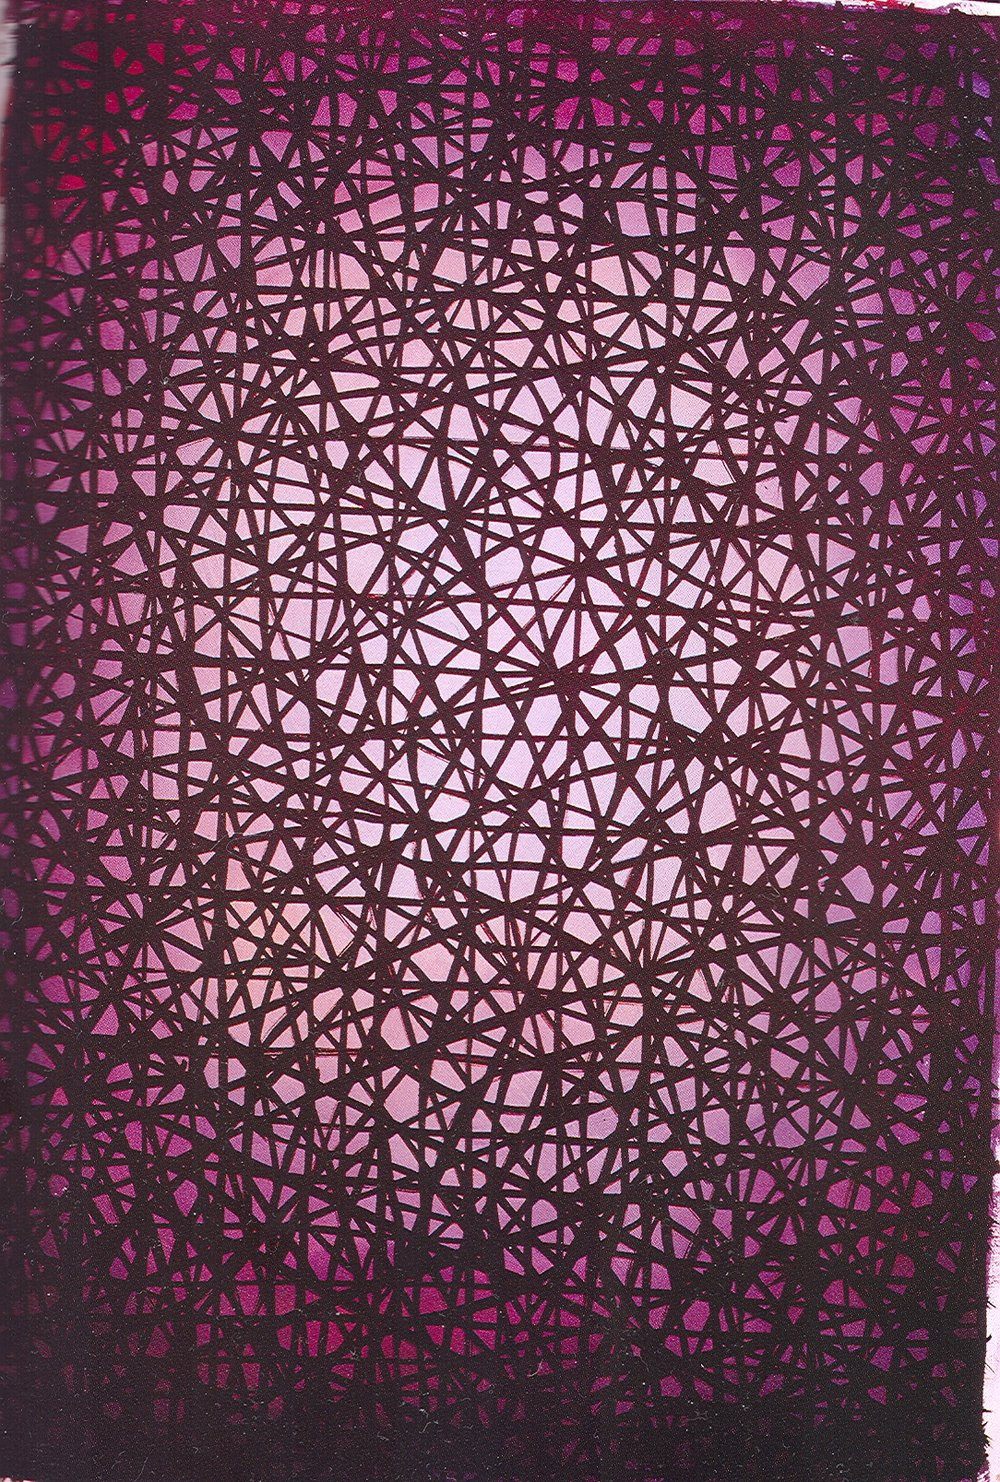 Brui William   Pink. Acrylic on canvas. 1985. Size 150 x 200 cm.